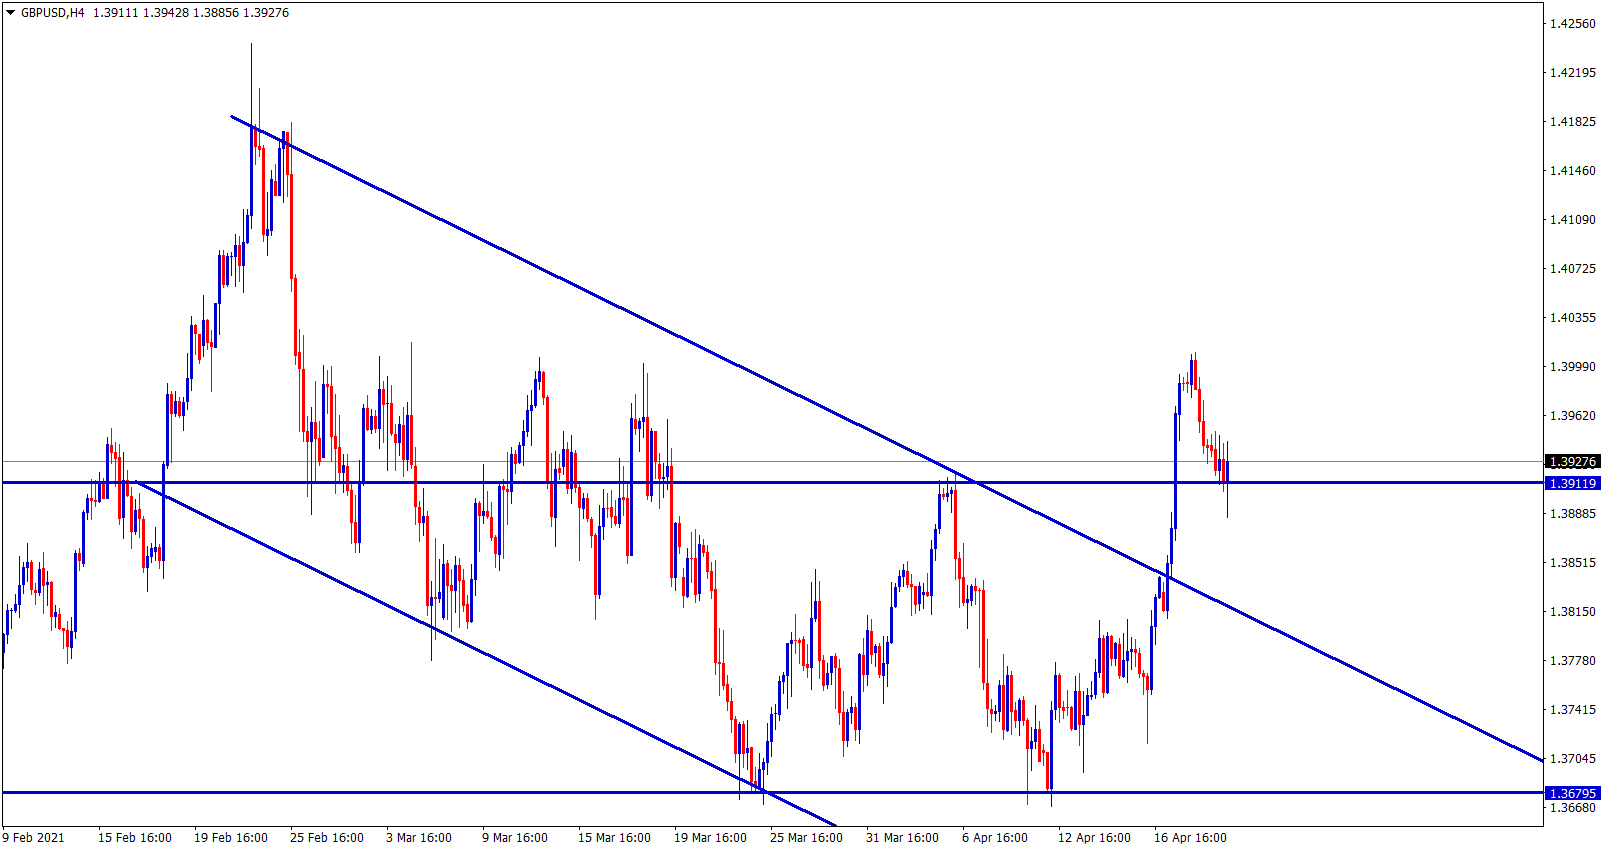 GBPUSD breakout and retested the broken level